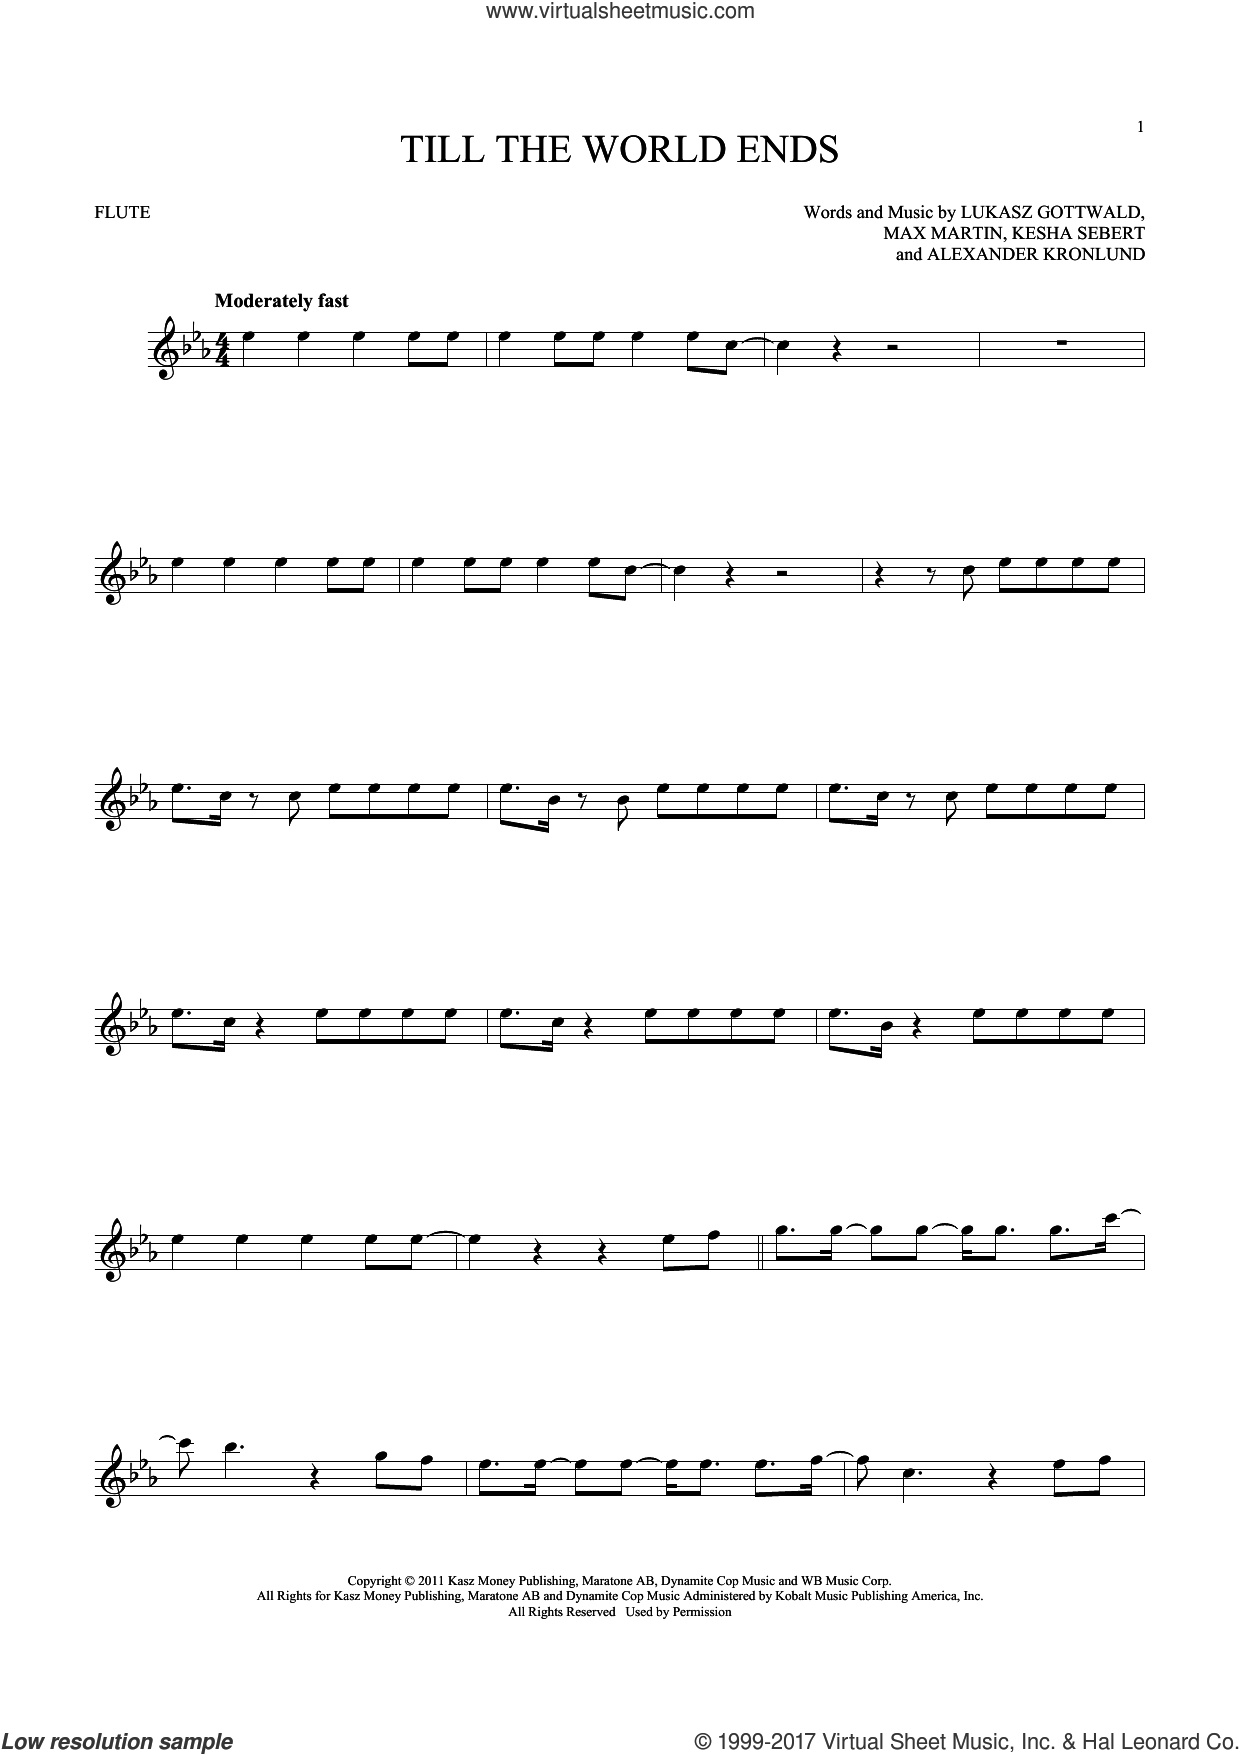 Till The World Ends sheet music for flute solo by Britney Spears, Alexander Kronlund, Kesha Sebert, Lukasz Gottwald and Max Martin, intermediate skill level